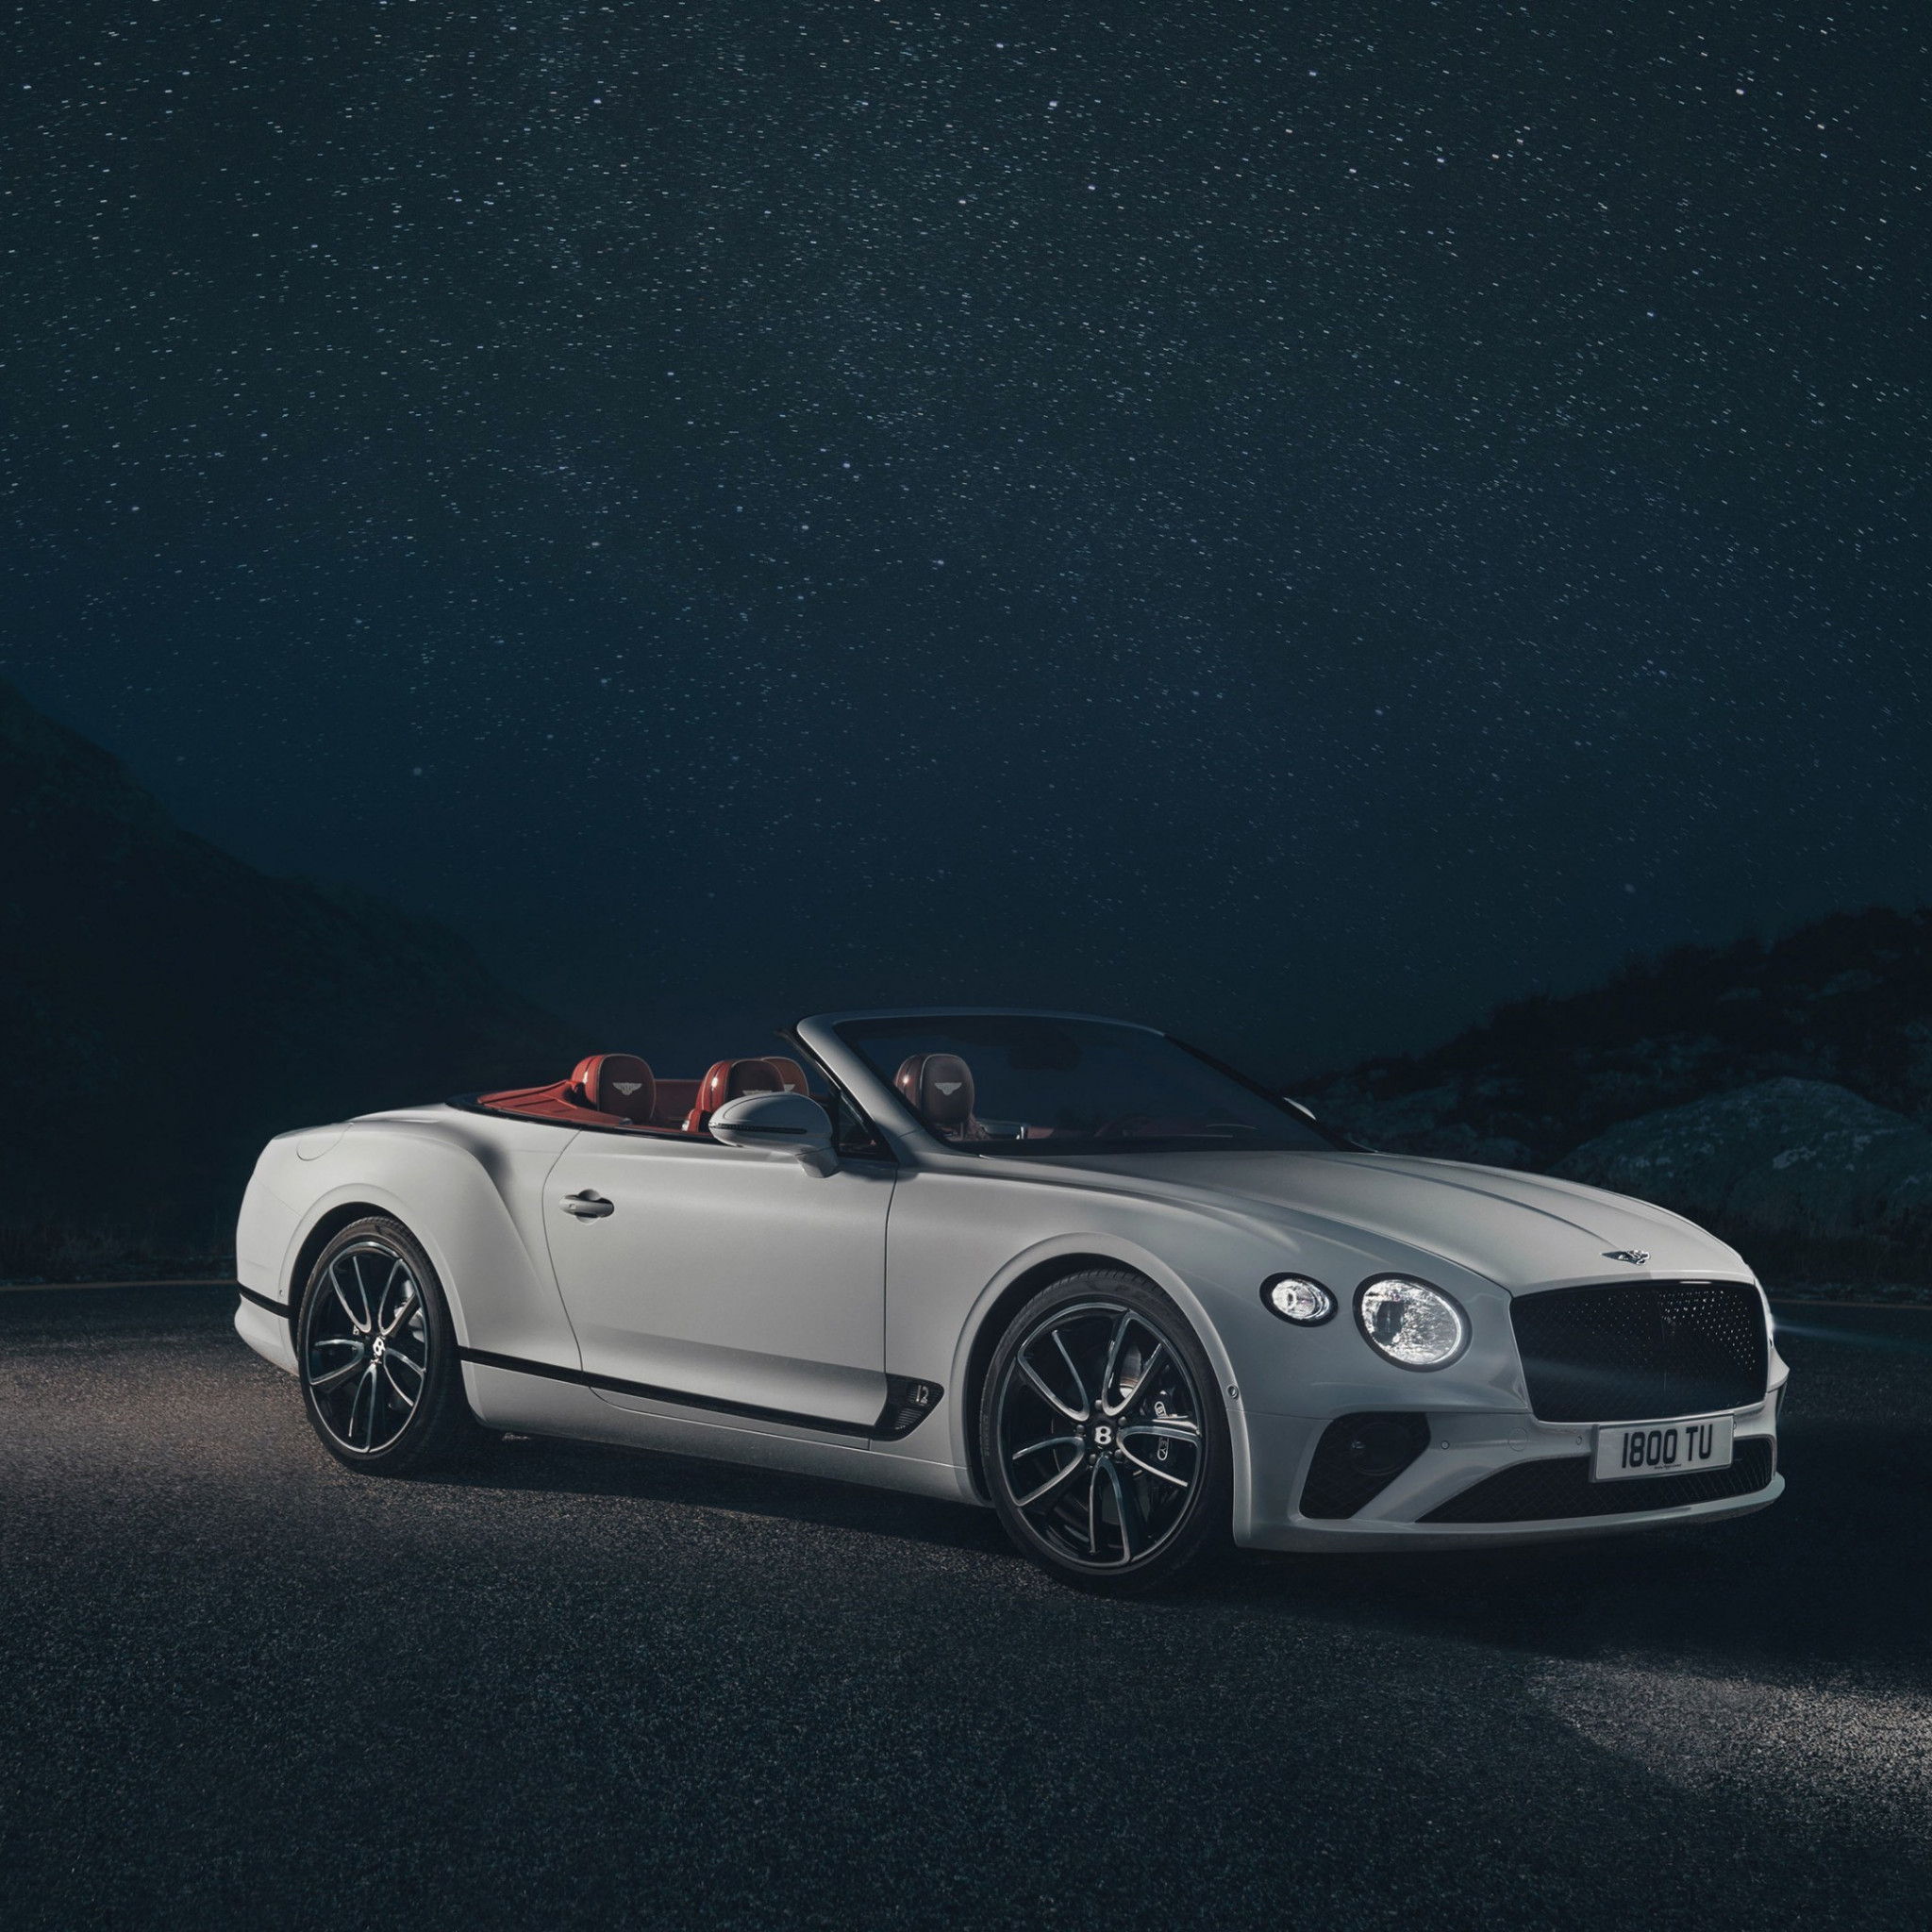 Bentley Continental GT | 2048x2048 wallpaper